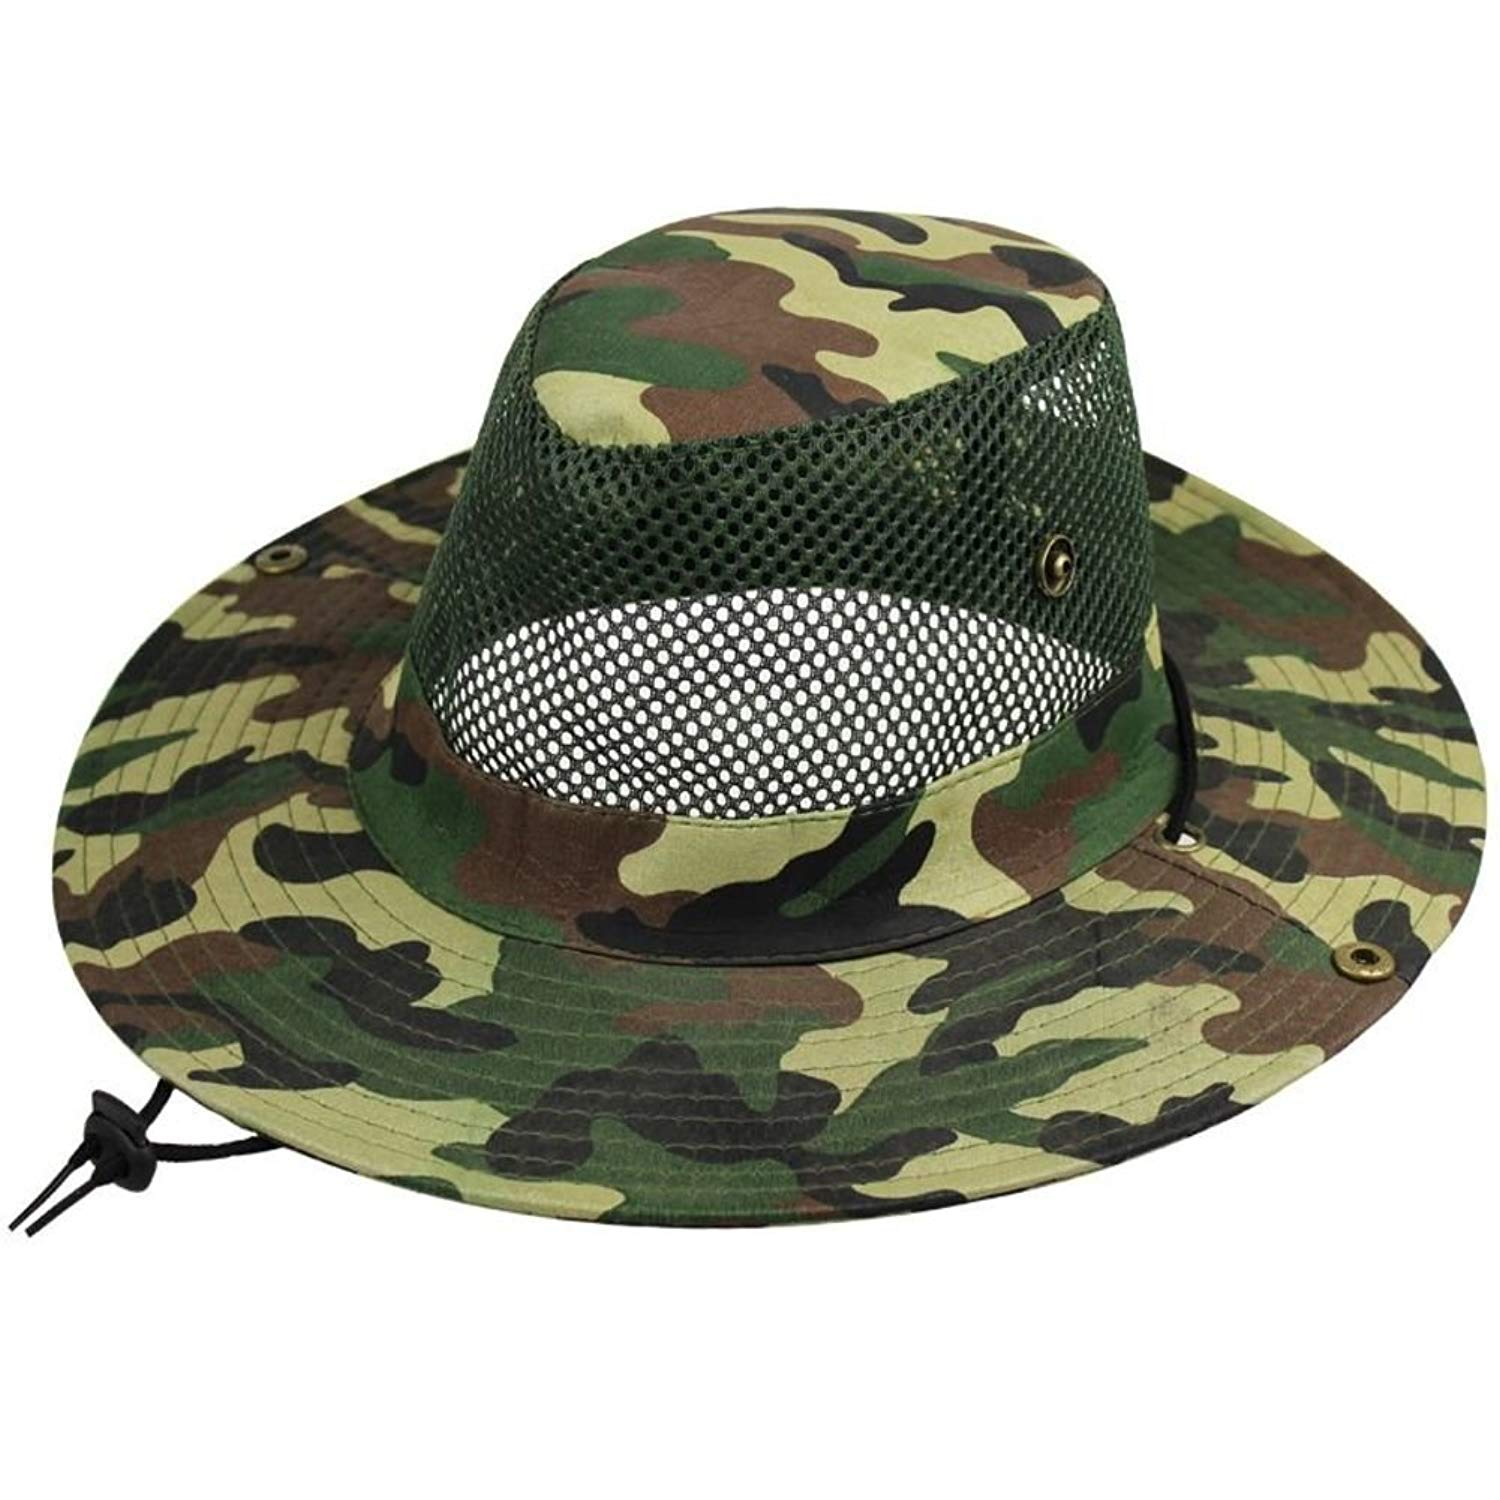 Outdoor climbing hat/Bucket Hat/ sunscreen Sunhat/Camouflage caps/Big brimmed hat